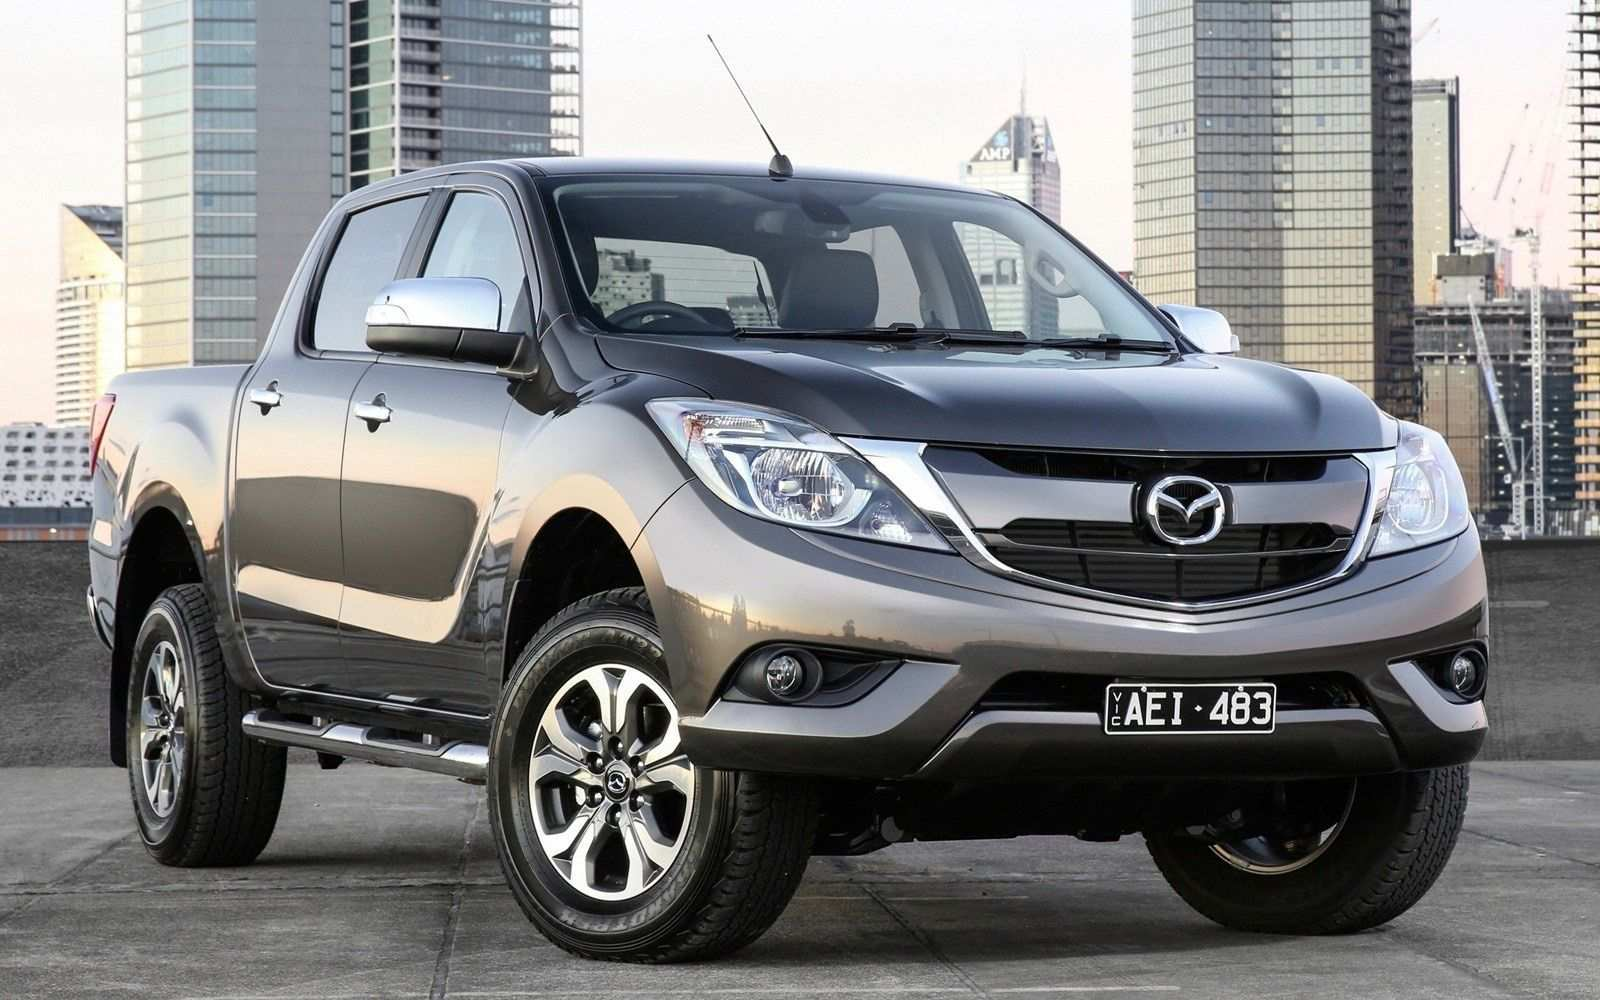 62 Concept of Mazda Bt 50 Pro 2019 Review Spesification by Mazda Bt 50 Pro 2019 Review